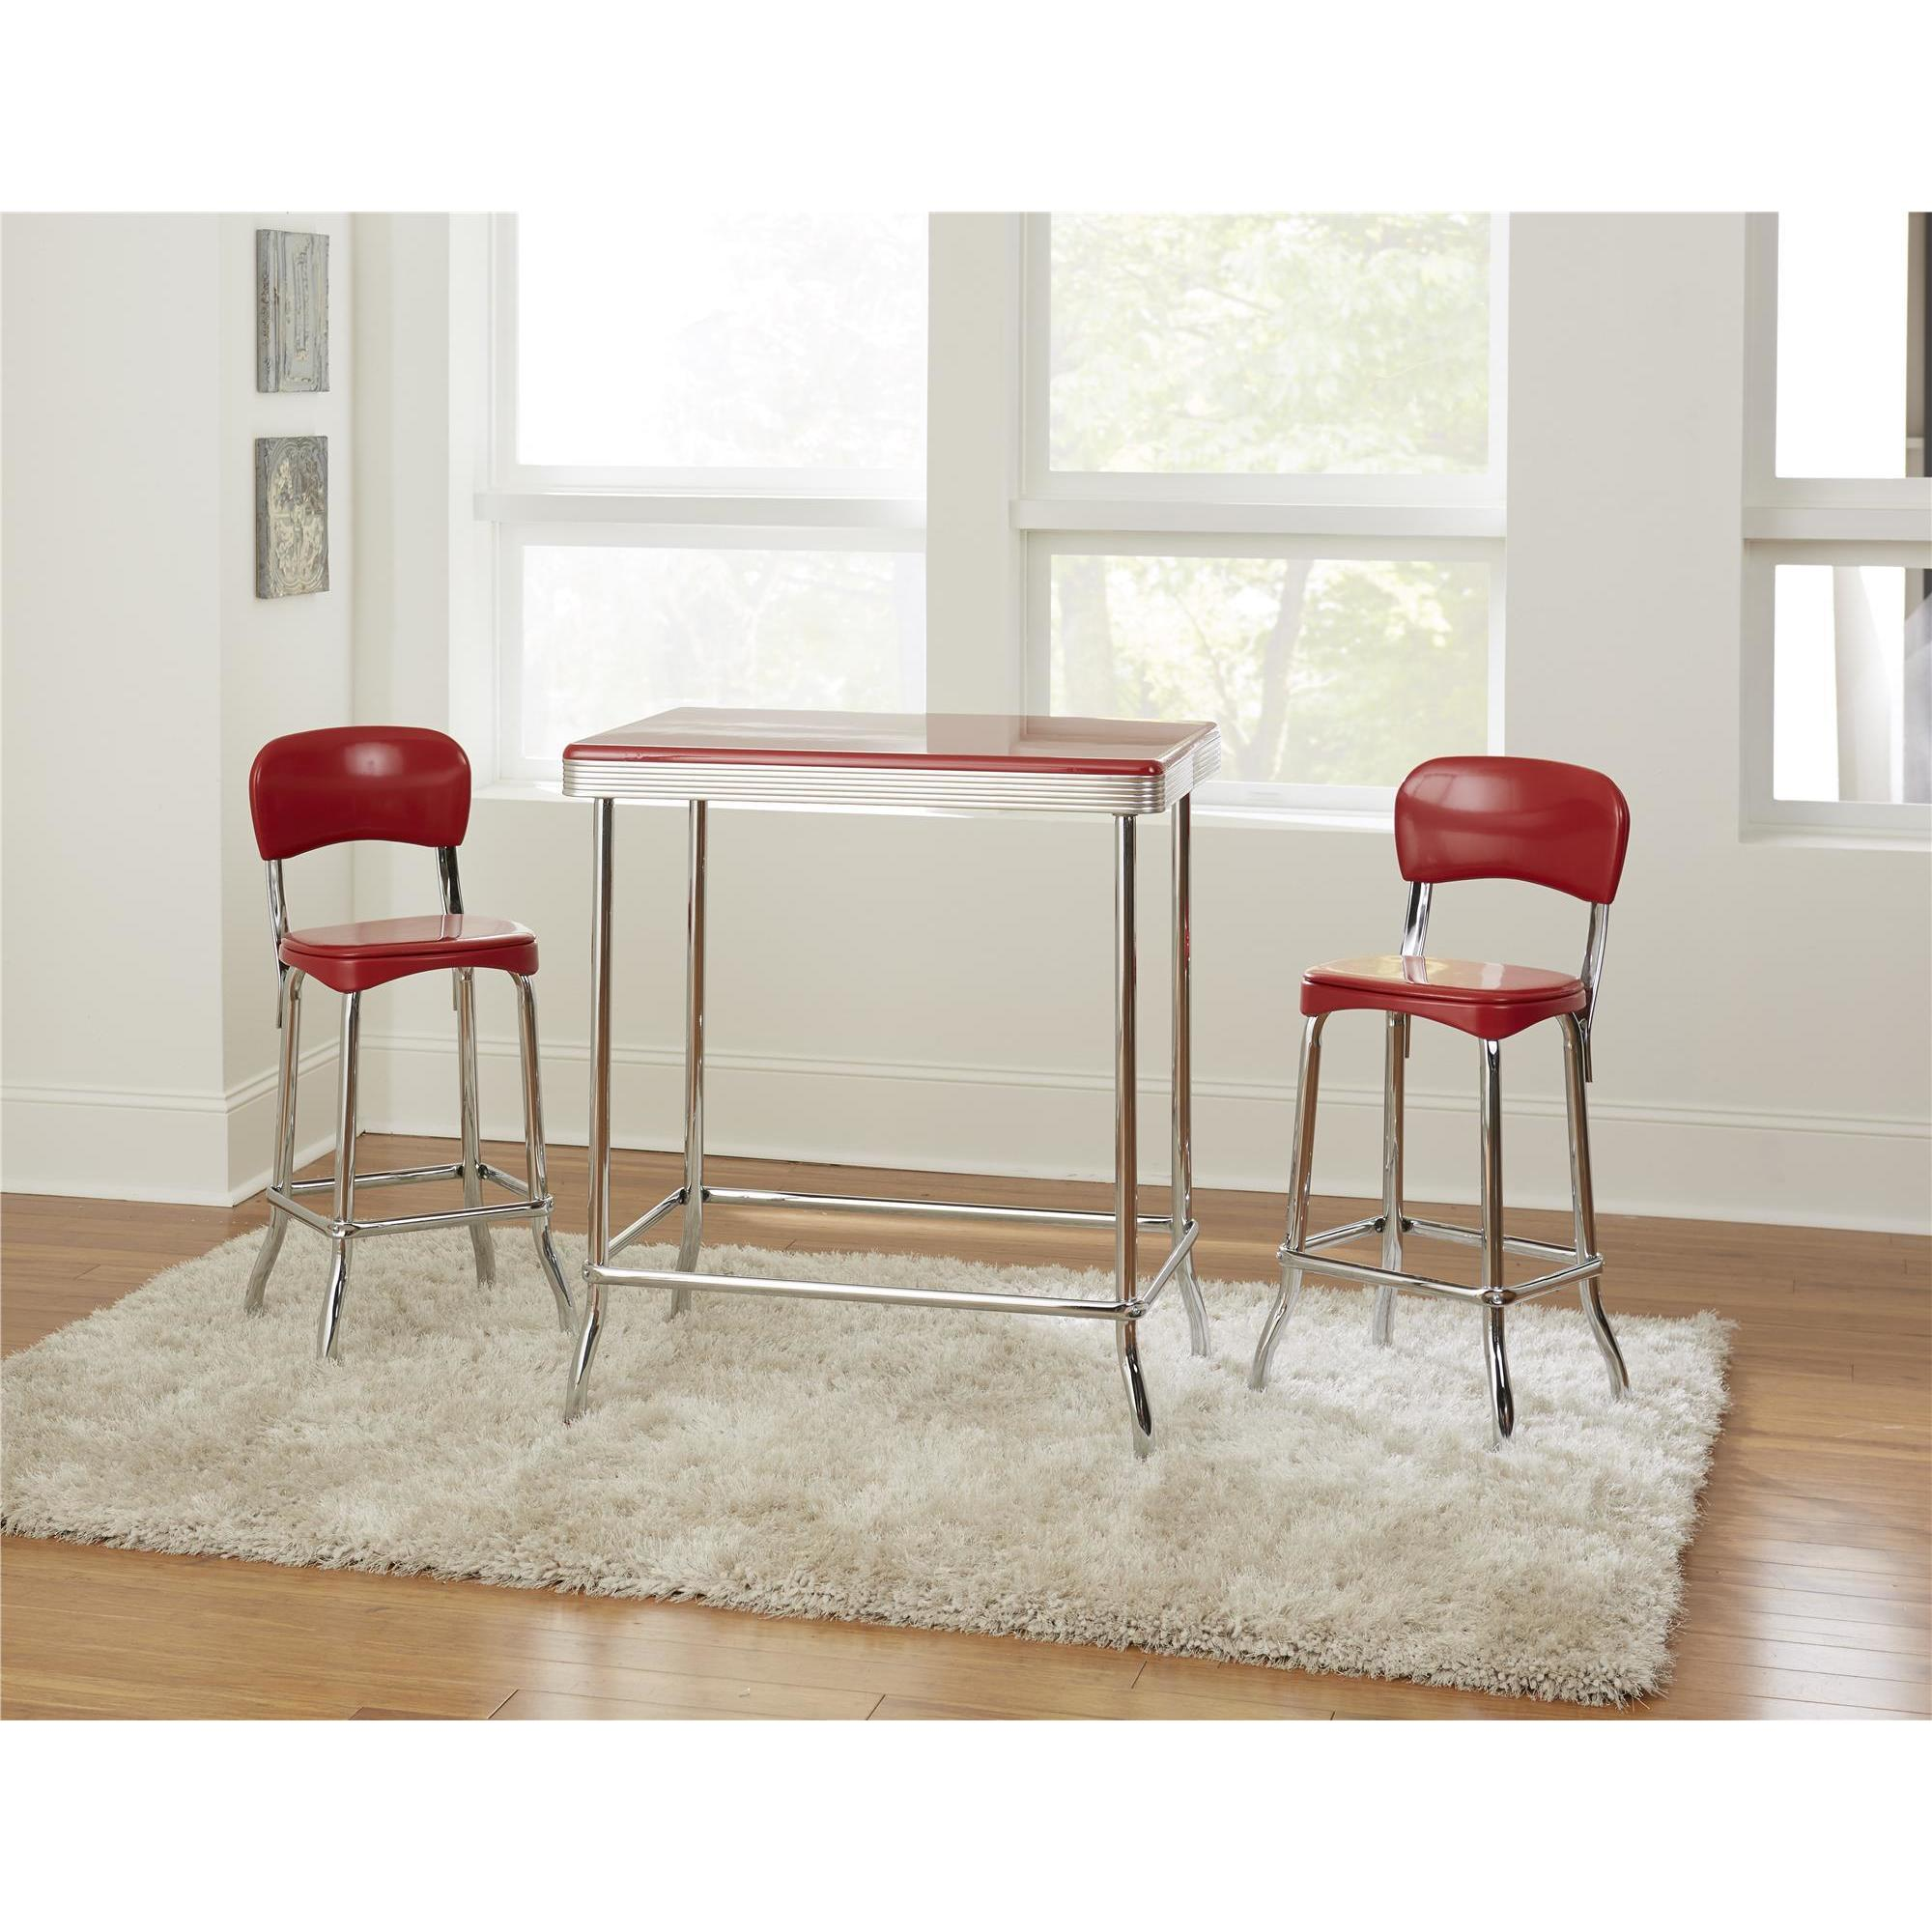 Shop COSCO Red Red Retro Chrome 2pc High Top Chairs   On Sale   Free  Shipping Today   Overstock.com   18213029